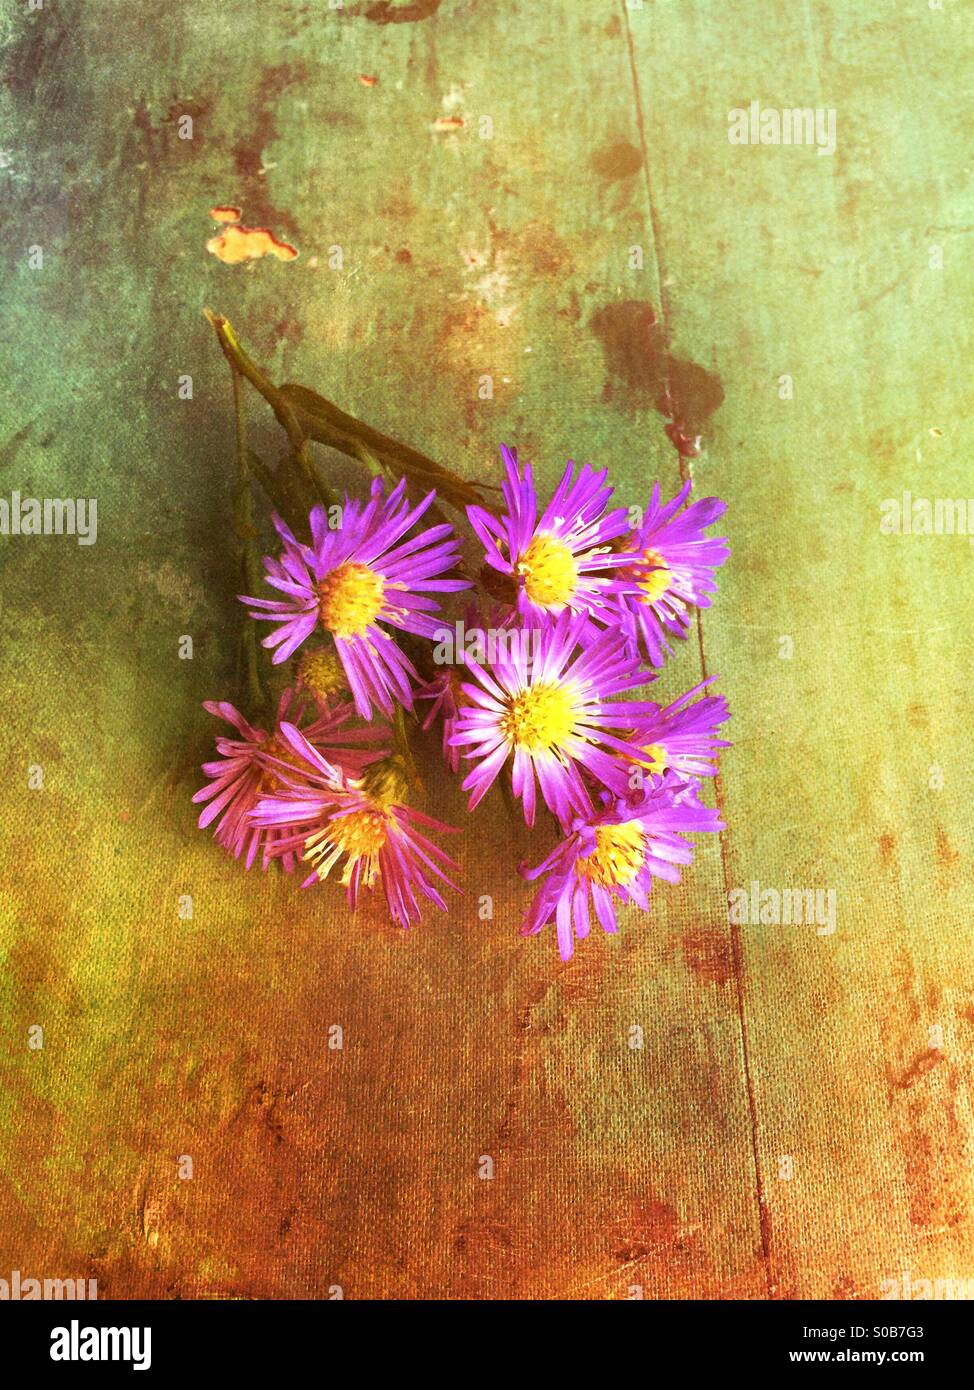 Purple Gerbera flowers on a grungy background - Stock Image